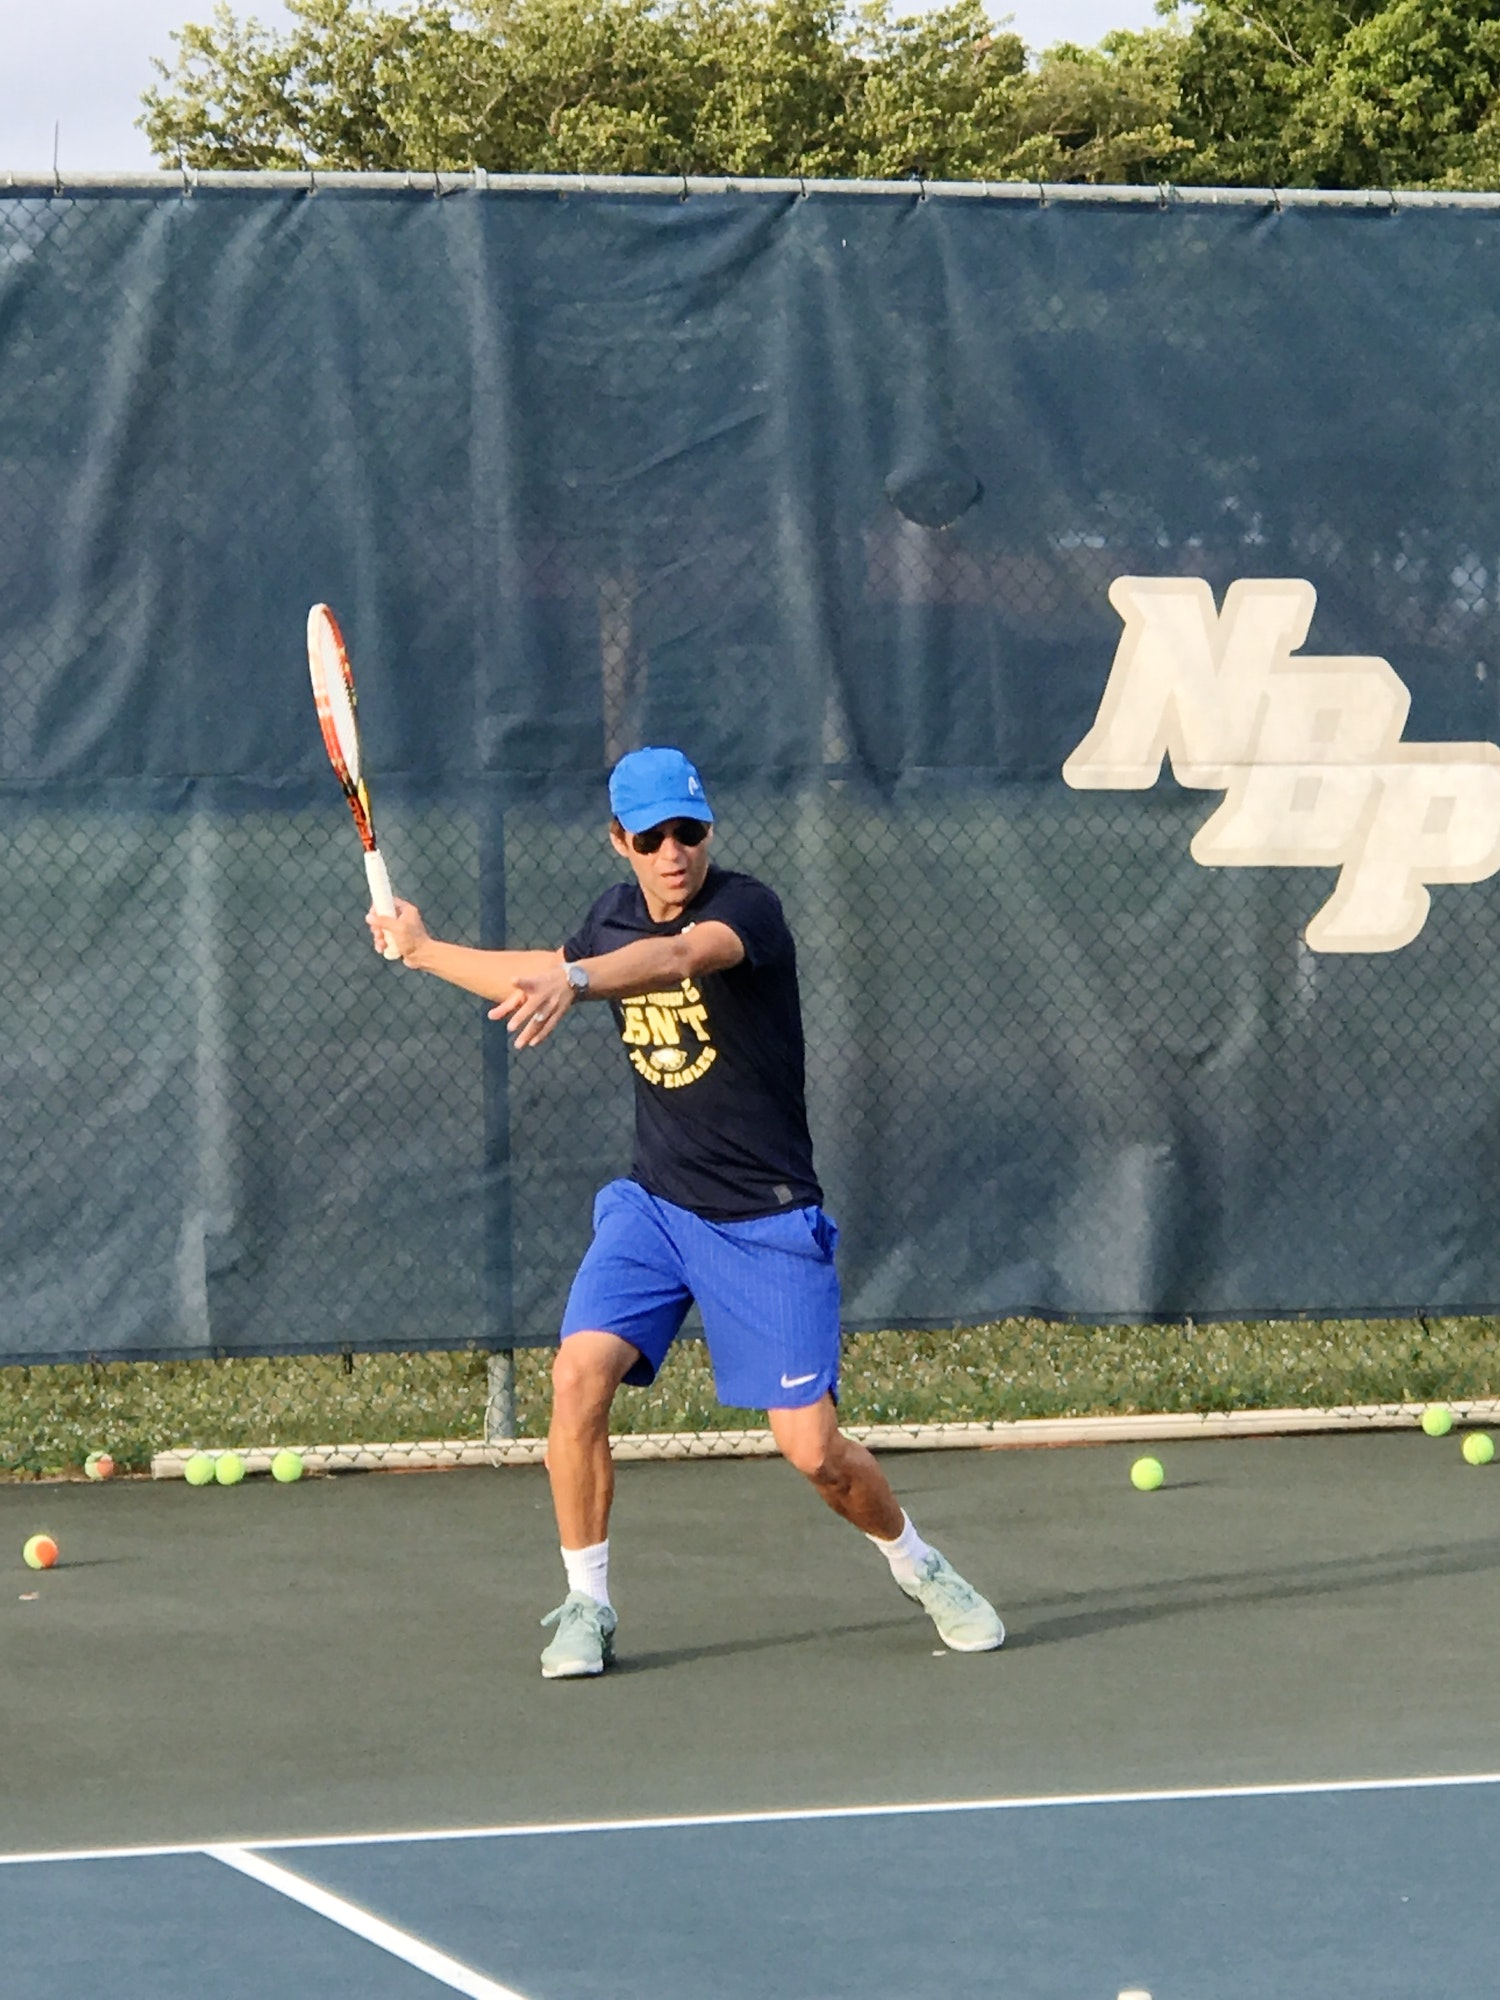 Dalibor N. teaches tennis lessons in Coconut Creek , FL